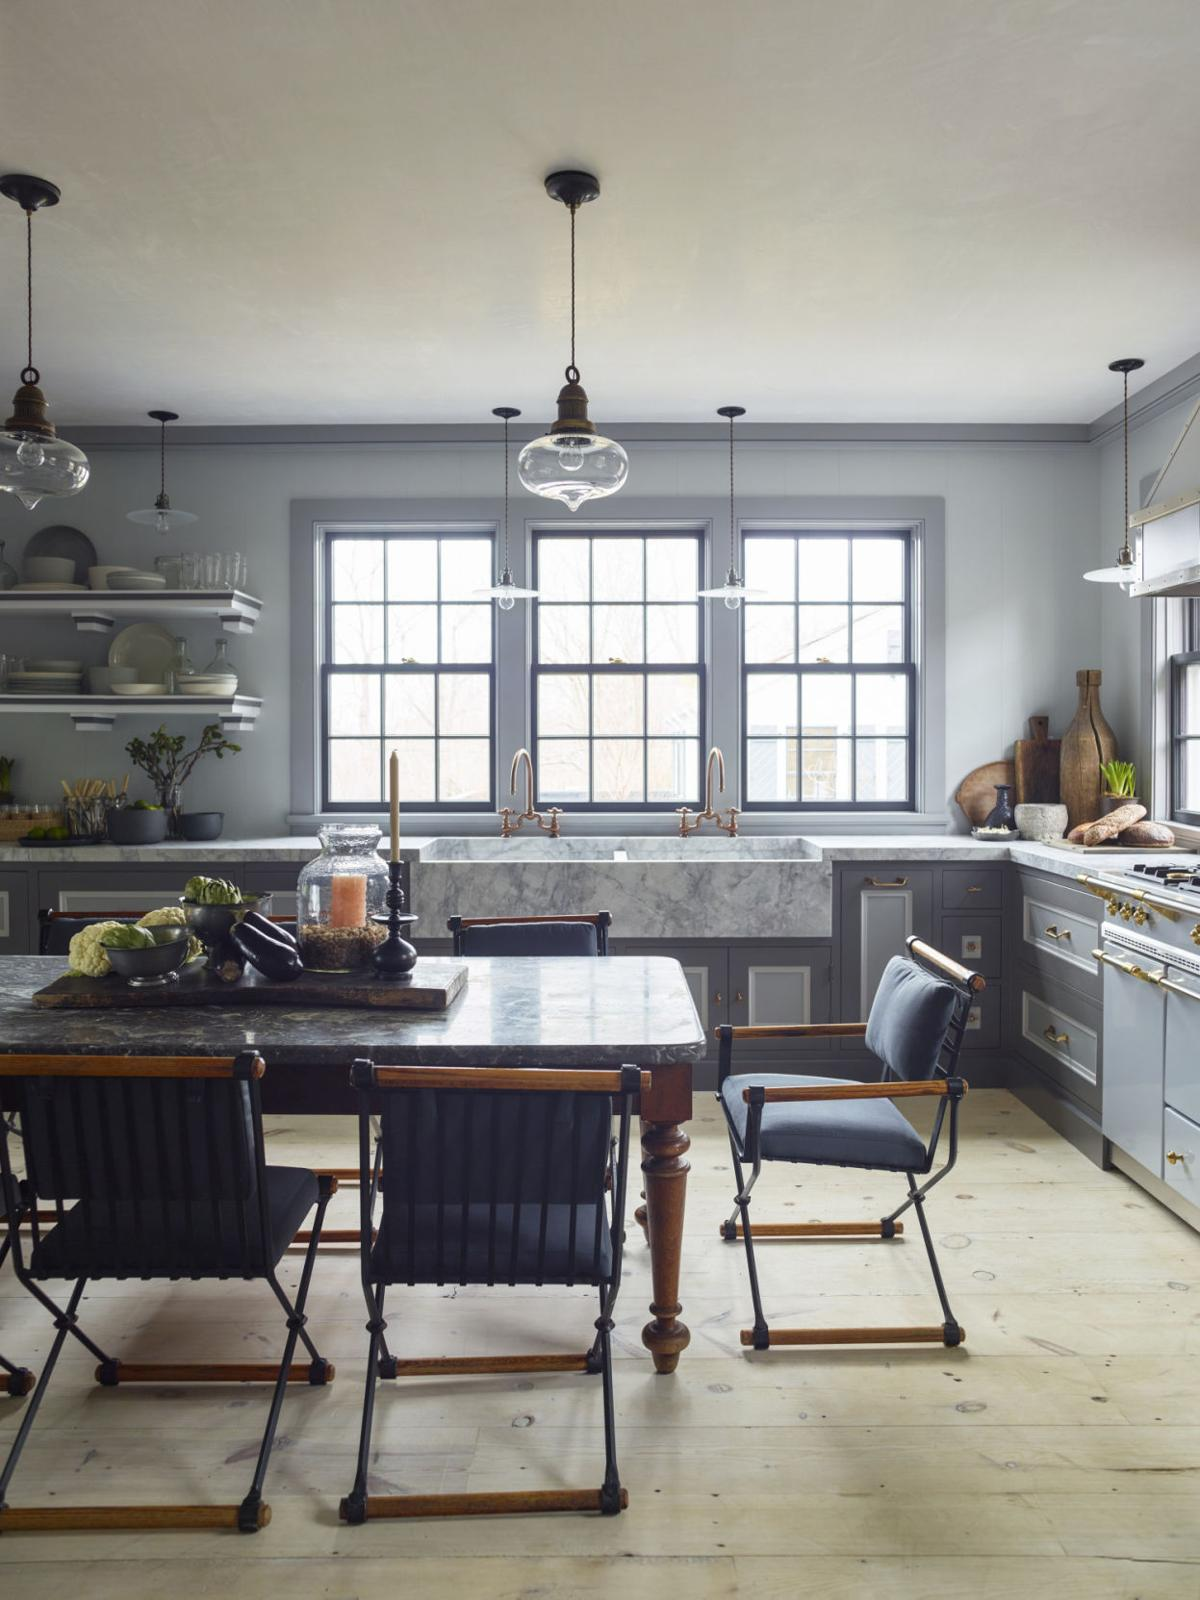 KITCHEN TABLES are making a comeback   Home and Garden   nny360.com